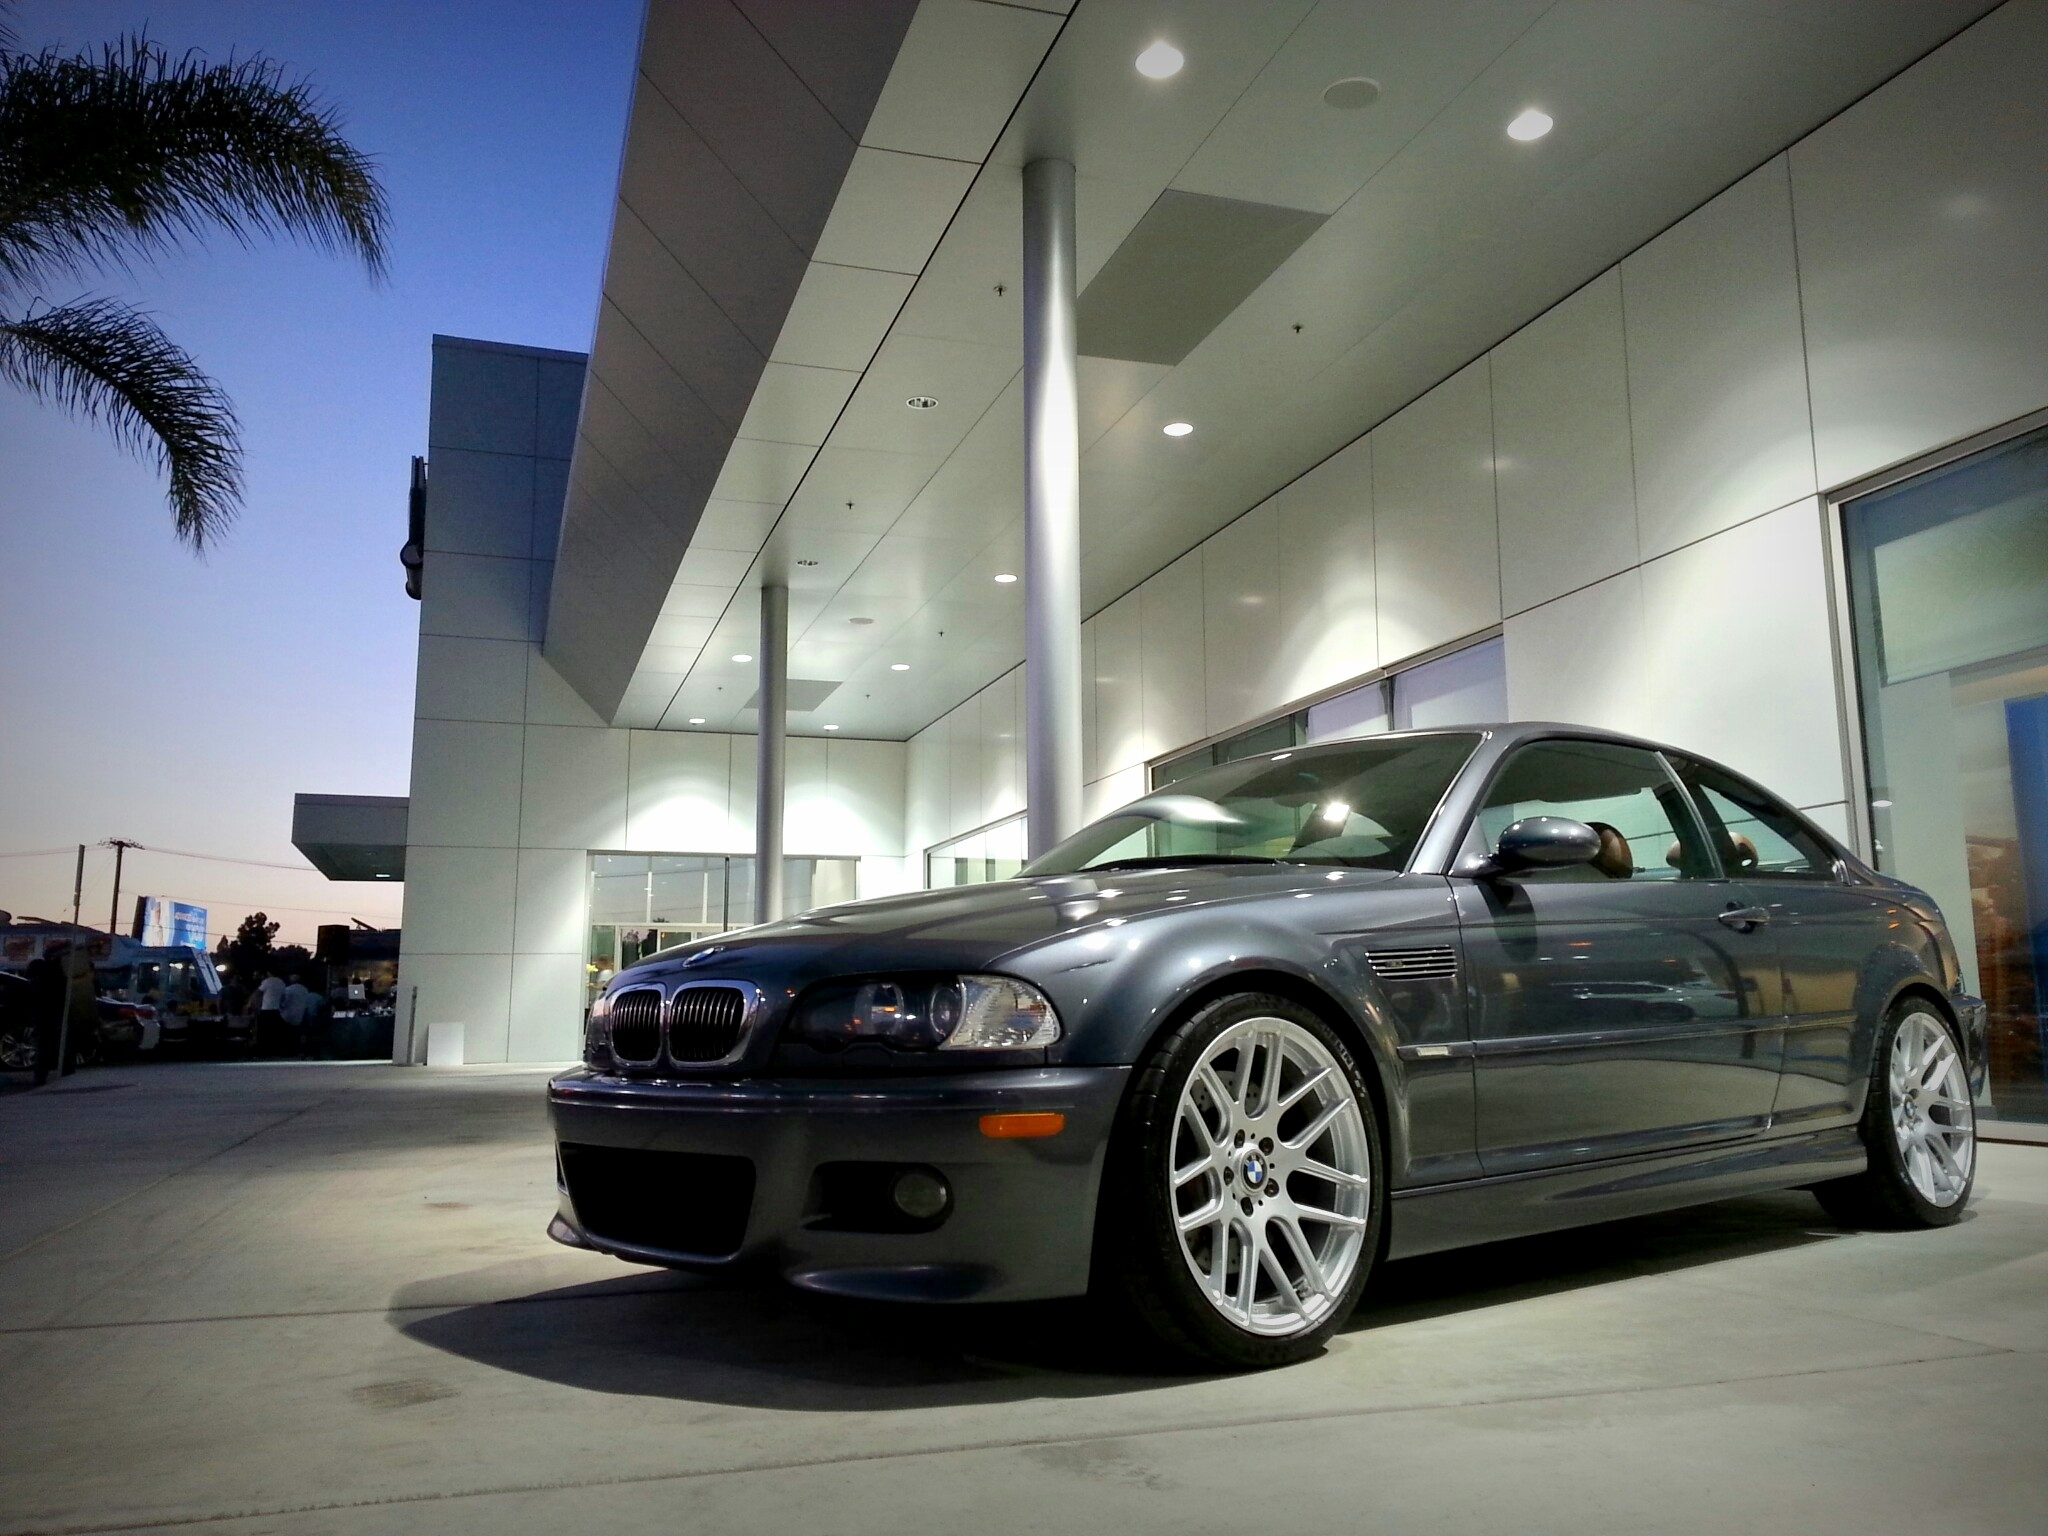 Is It A Classic, Or Just An Old Car? | BMW Car Club of America